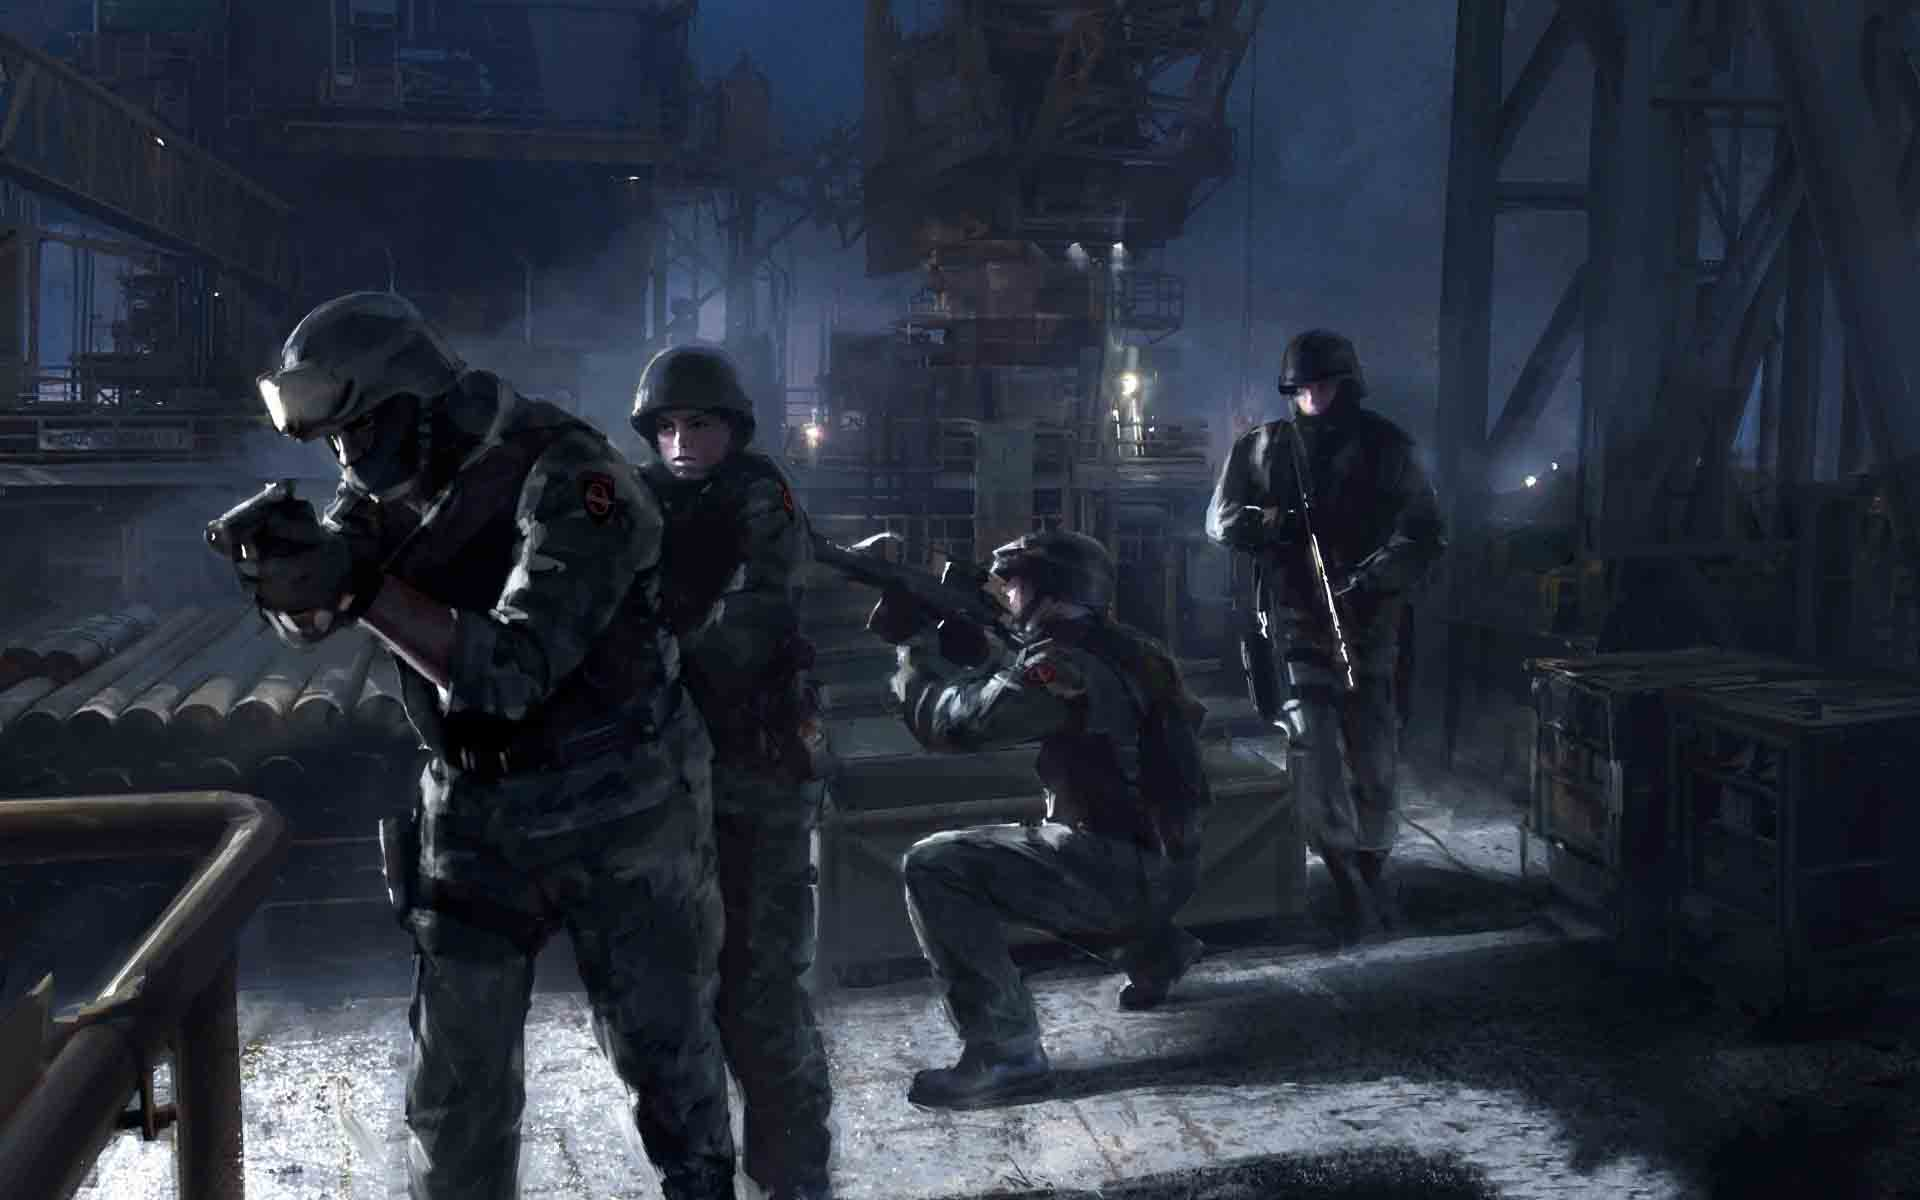 download-SWAT-4-Gold-Edition-Remake-Online-hadoan-tv-3